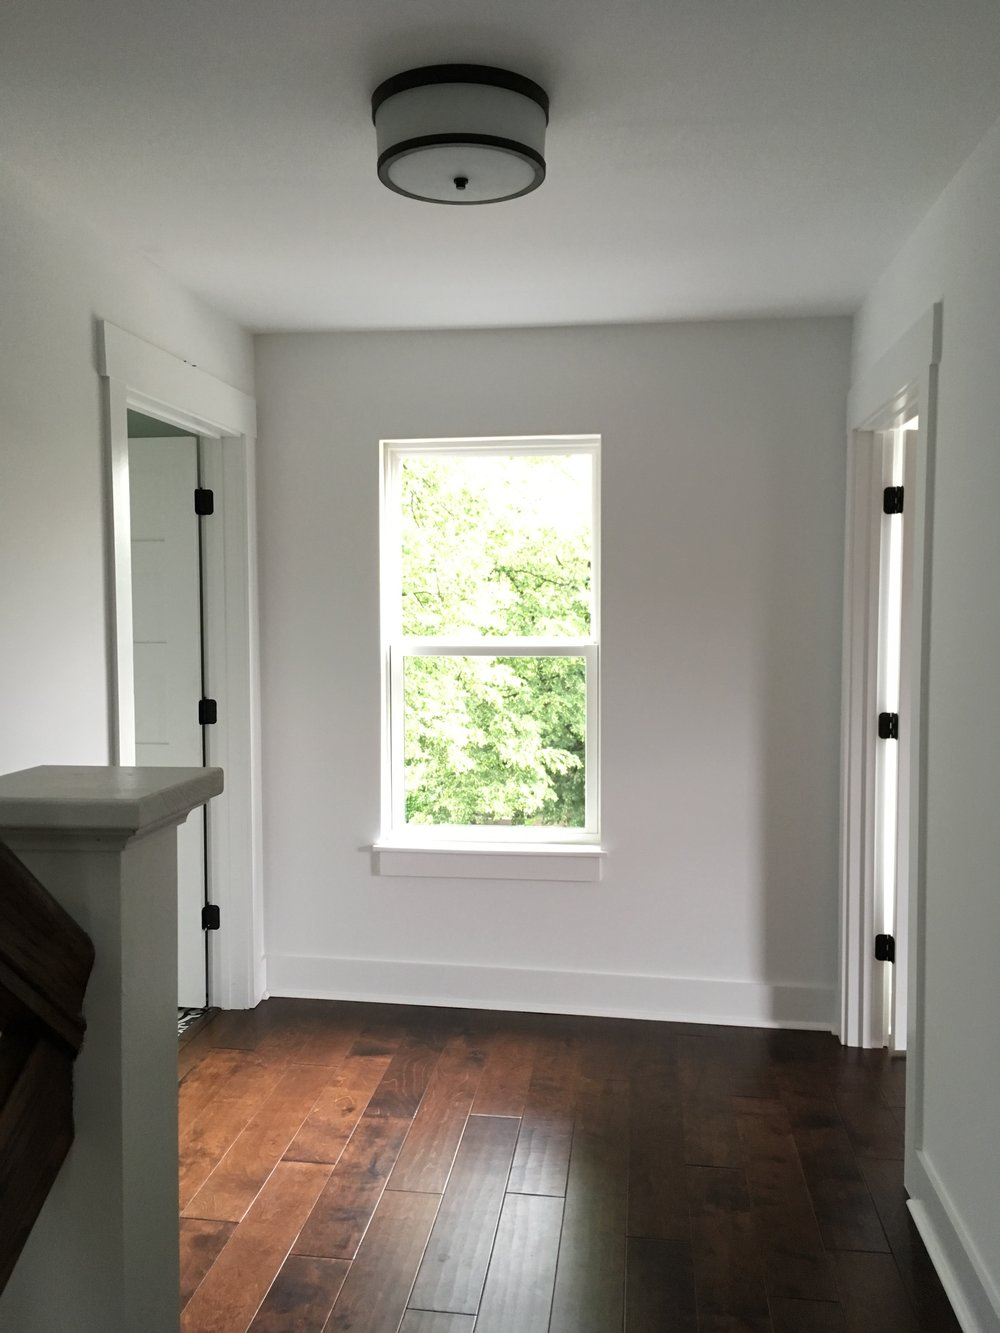 After: the window is no longer centered in the hallway because the wall on the right was shifted to accommodate the wider stairs.